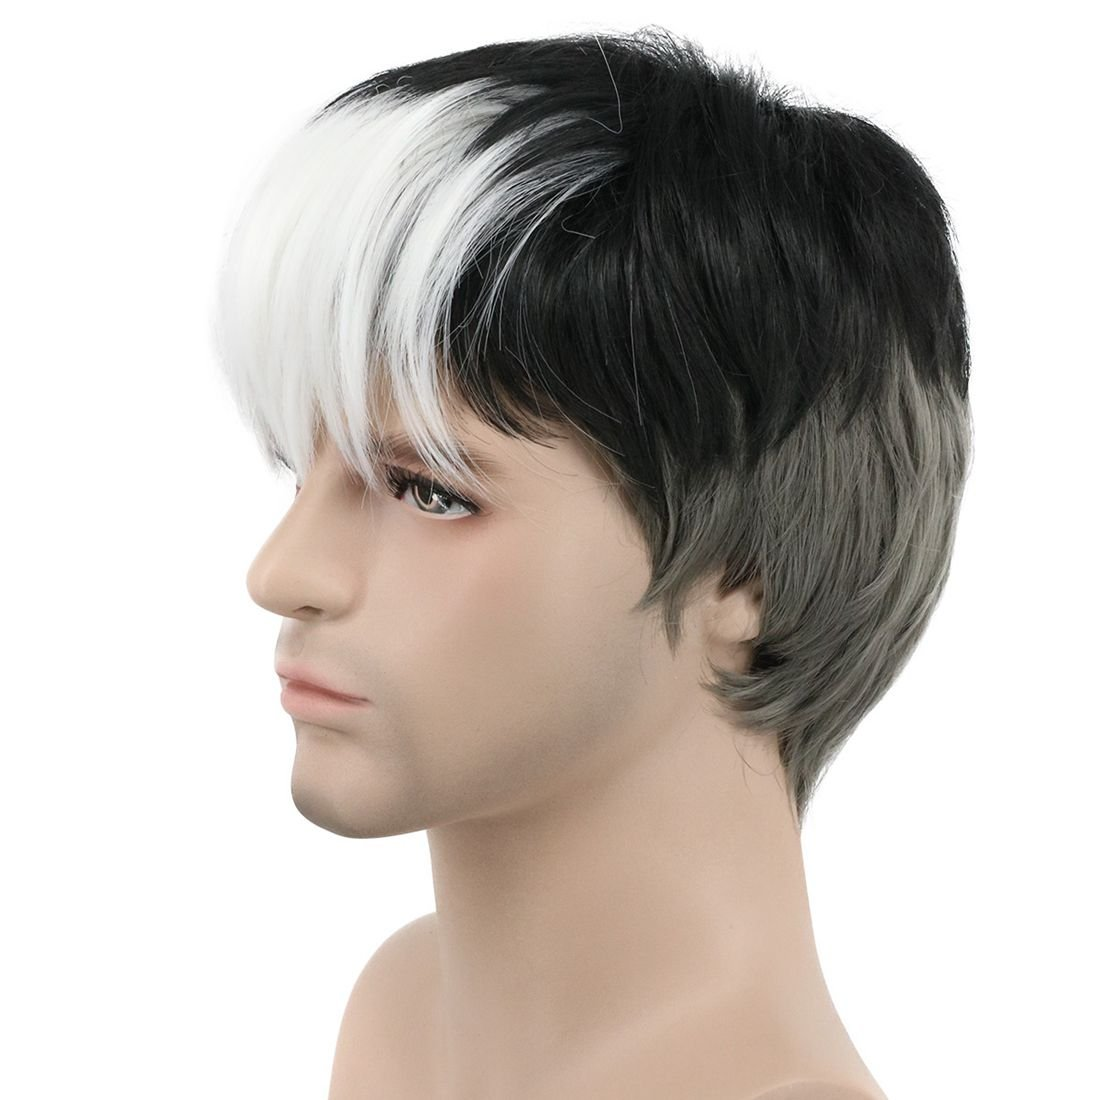 Karlery Mens Short Straight White Gray Black Wig Halloween Costume Wig Anime Cosplay Wig